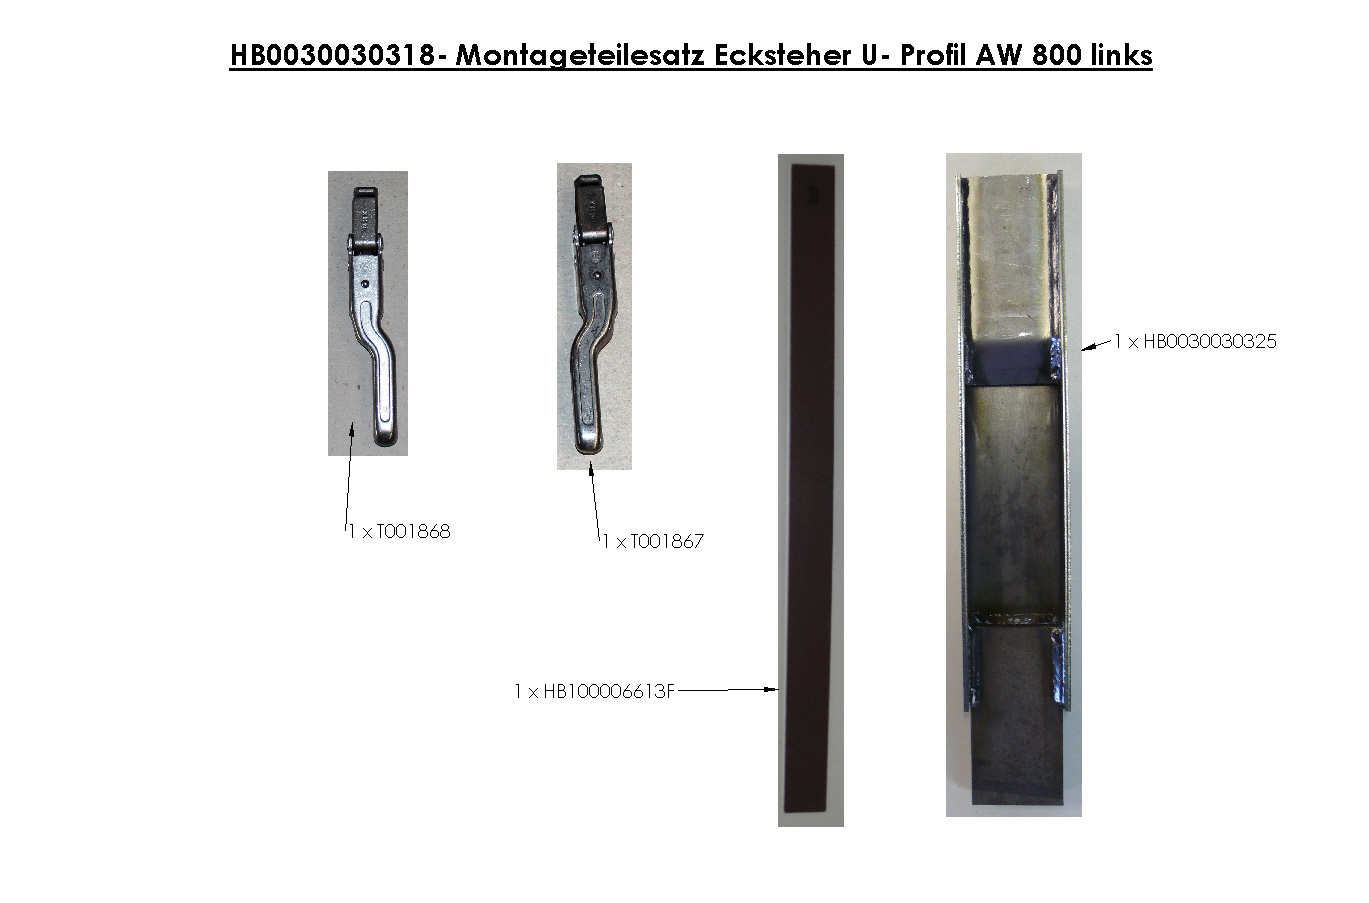 Brantner Kipper und Anhänger - assembly kit U-profile 113 x 50 corner stanchion